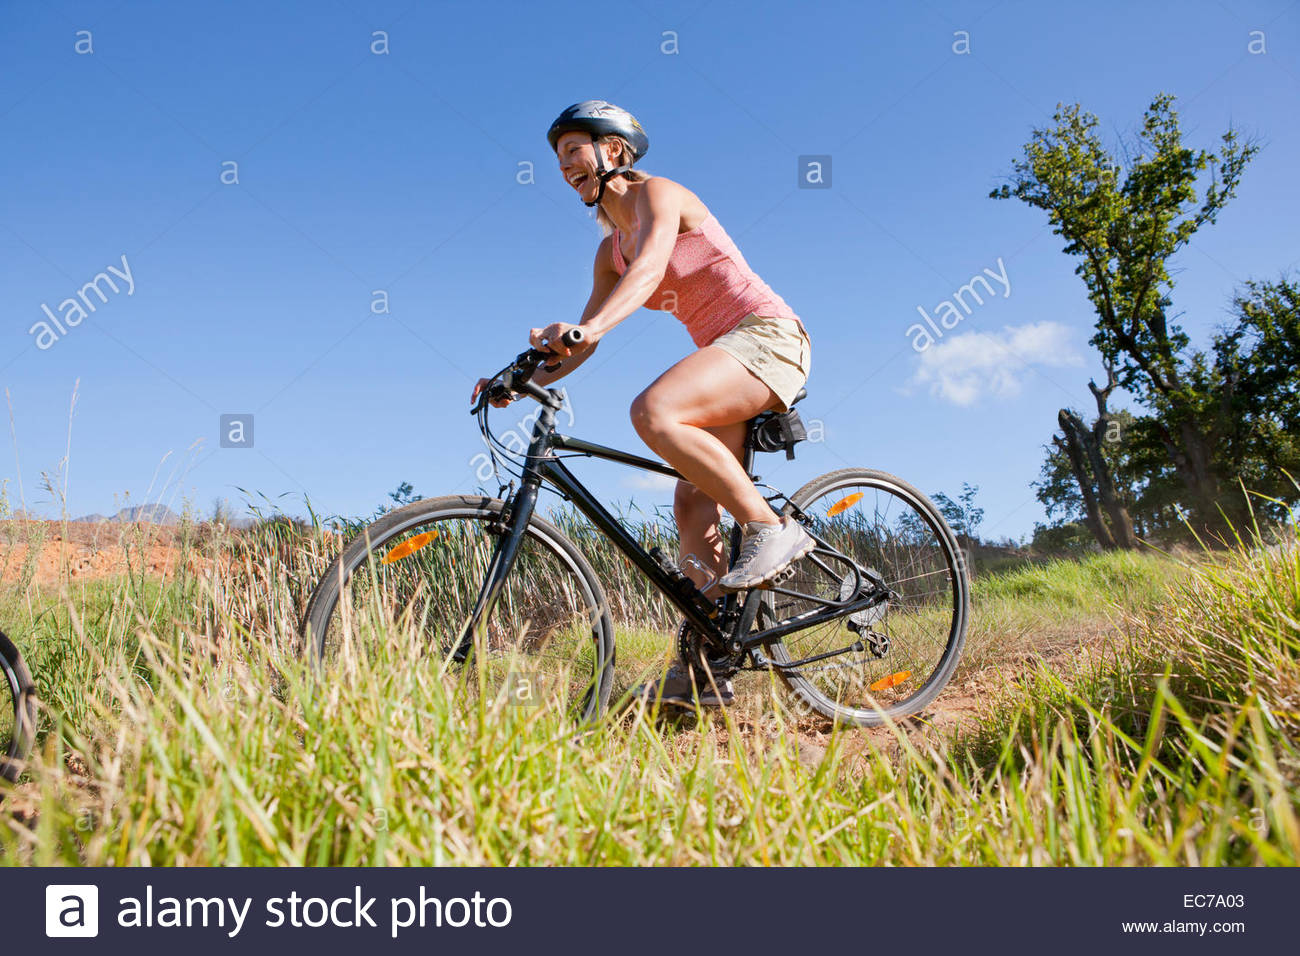 Woman mountain biking on country track - Stock Image